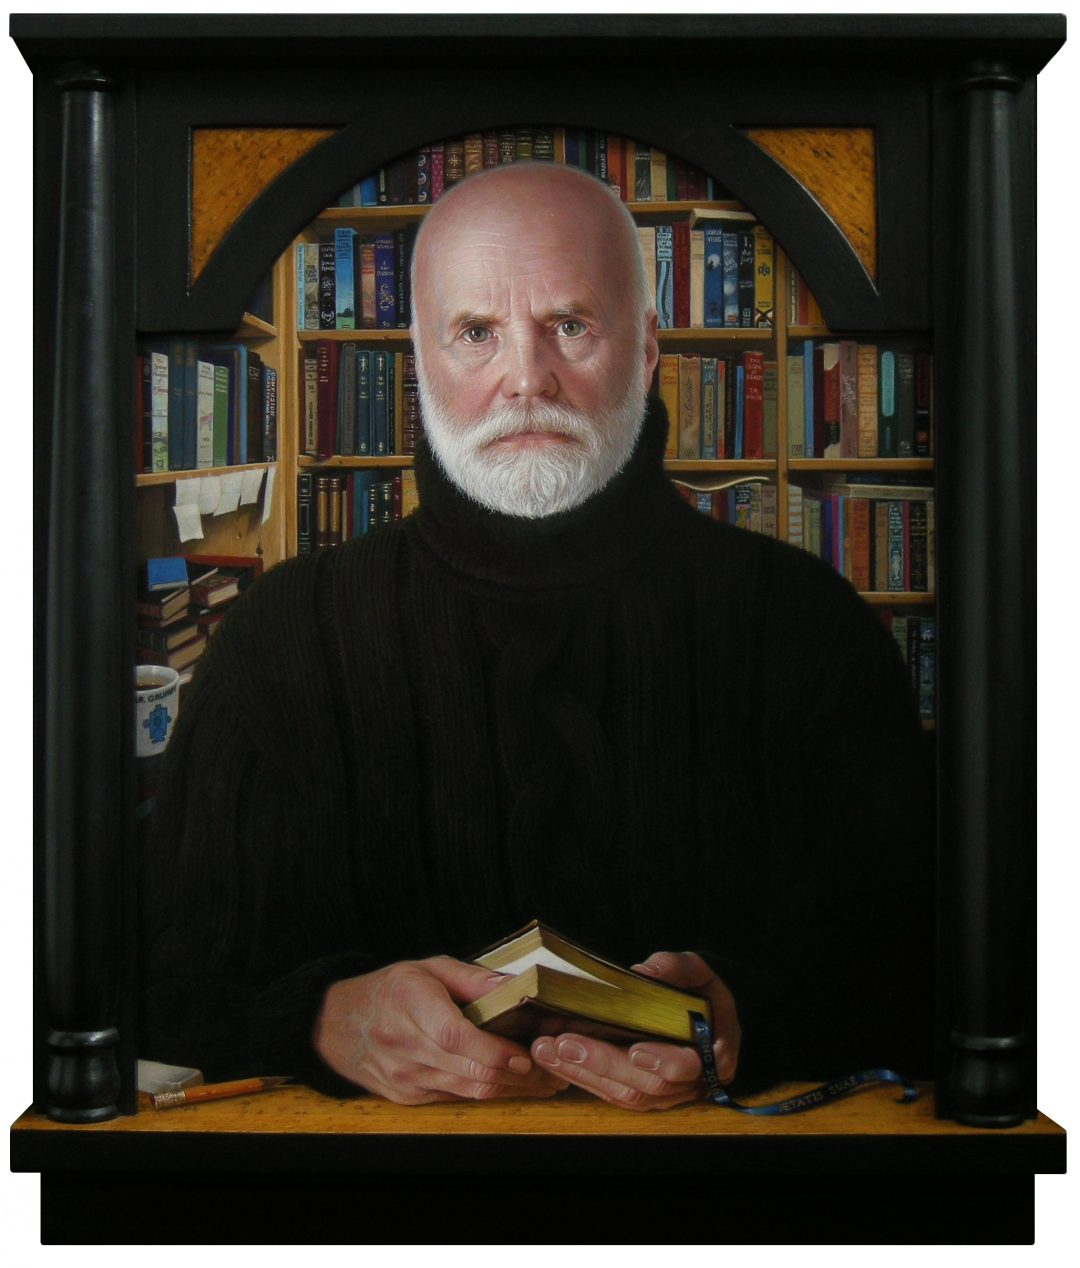 "'The Bookseller' Leslie Watts Egg tempera on panel, 20 x 16"" in a frame made by the artist, 2017"